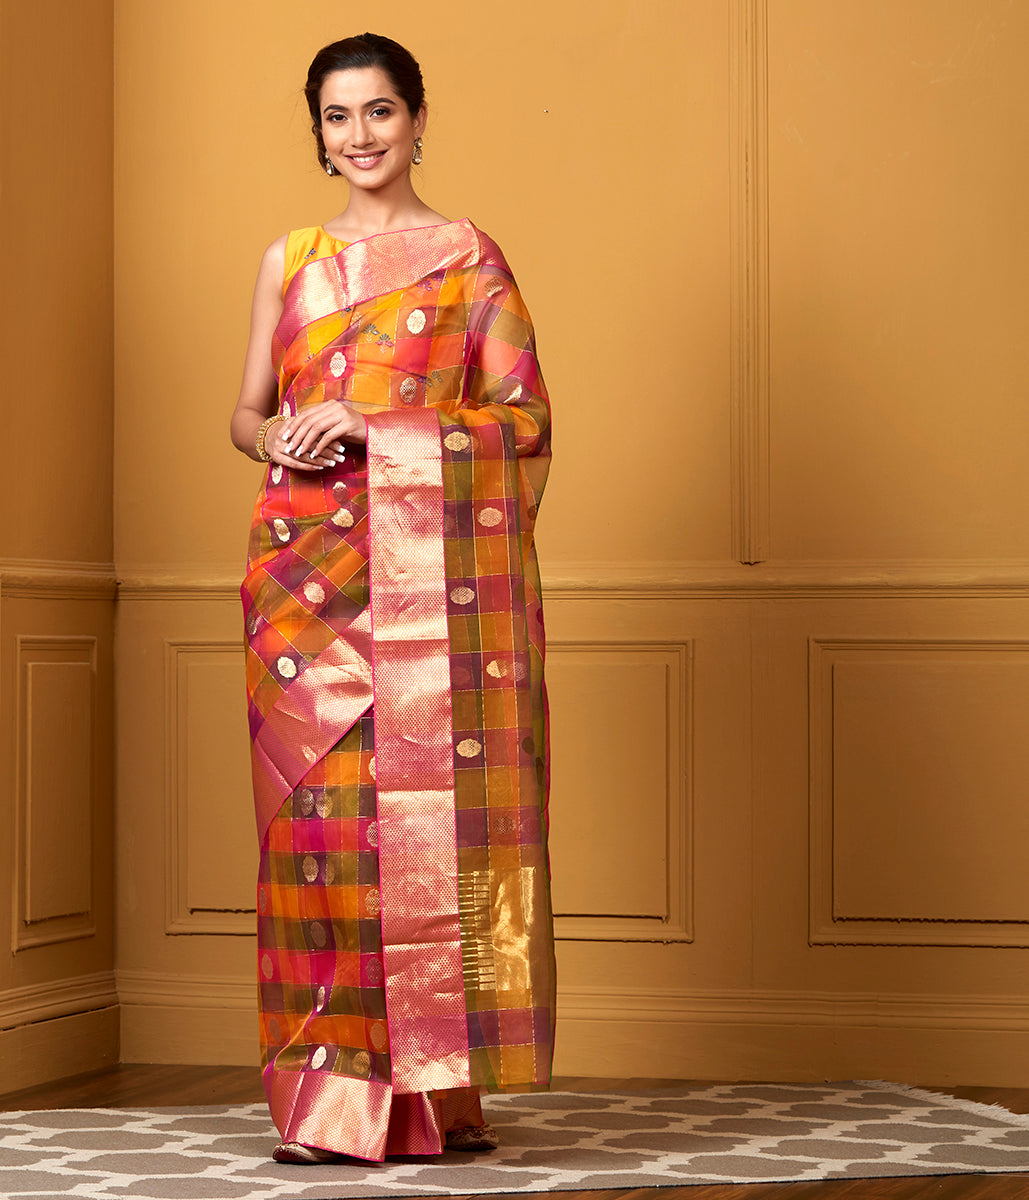 Handwoven Kora Multi Color Checks Saree with Gold Zari Boota